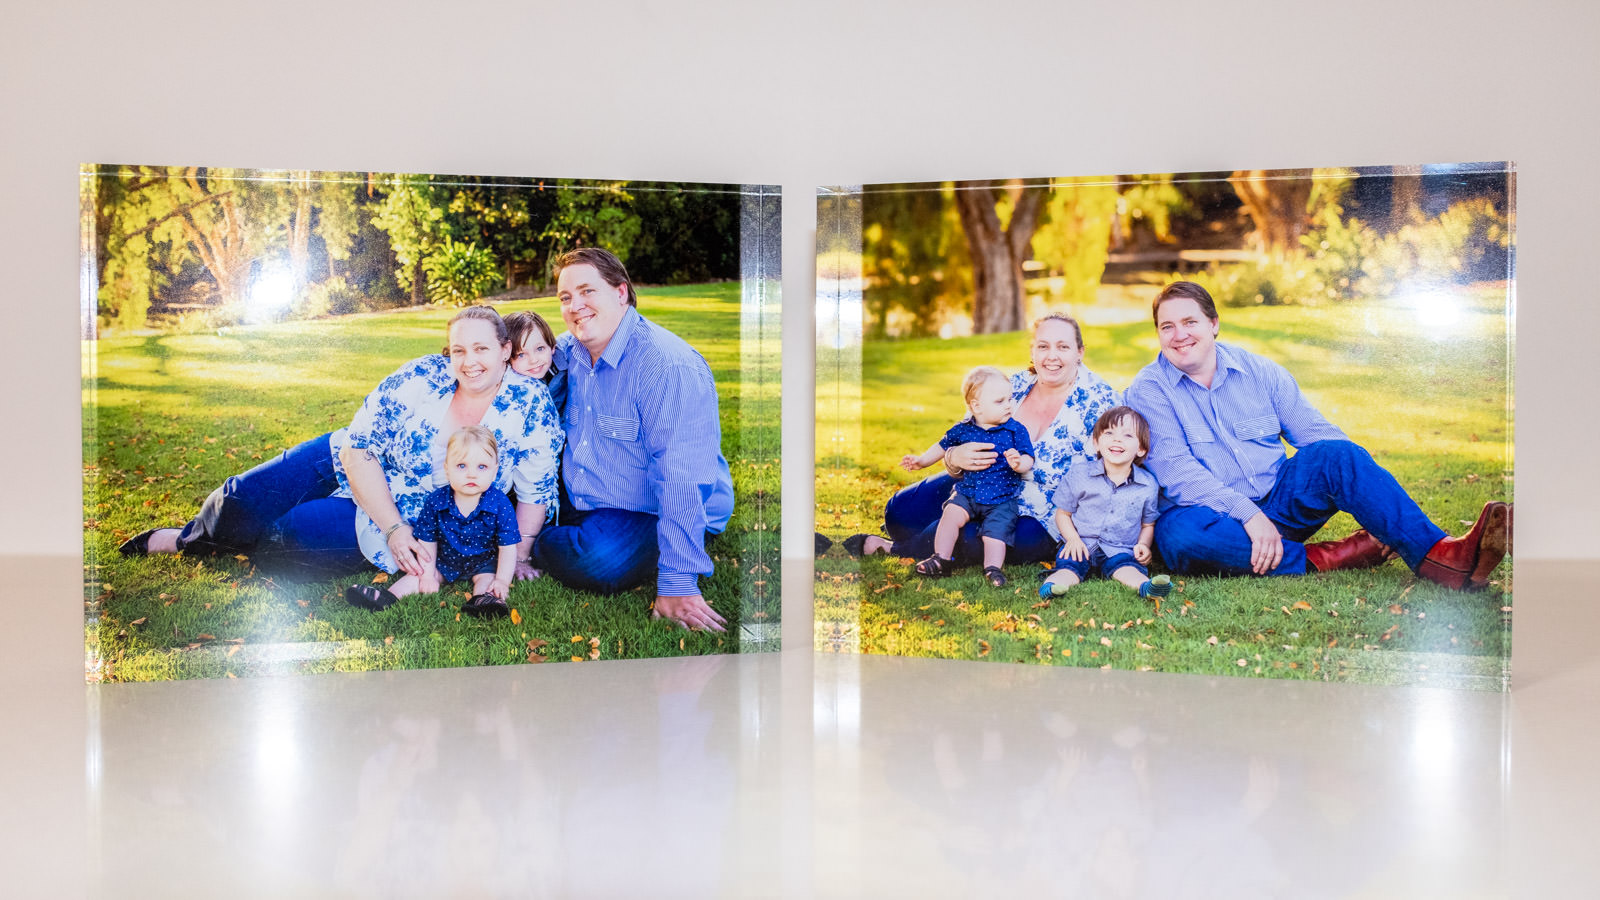 Acrylic tiles with printed image